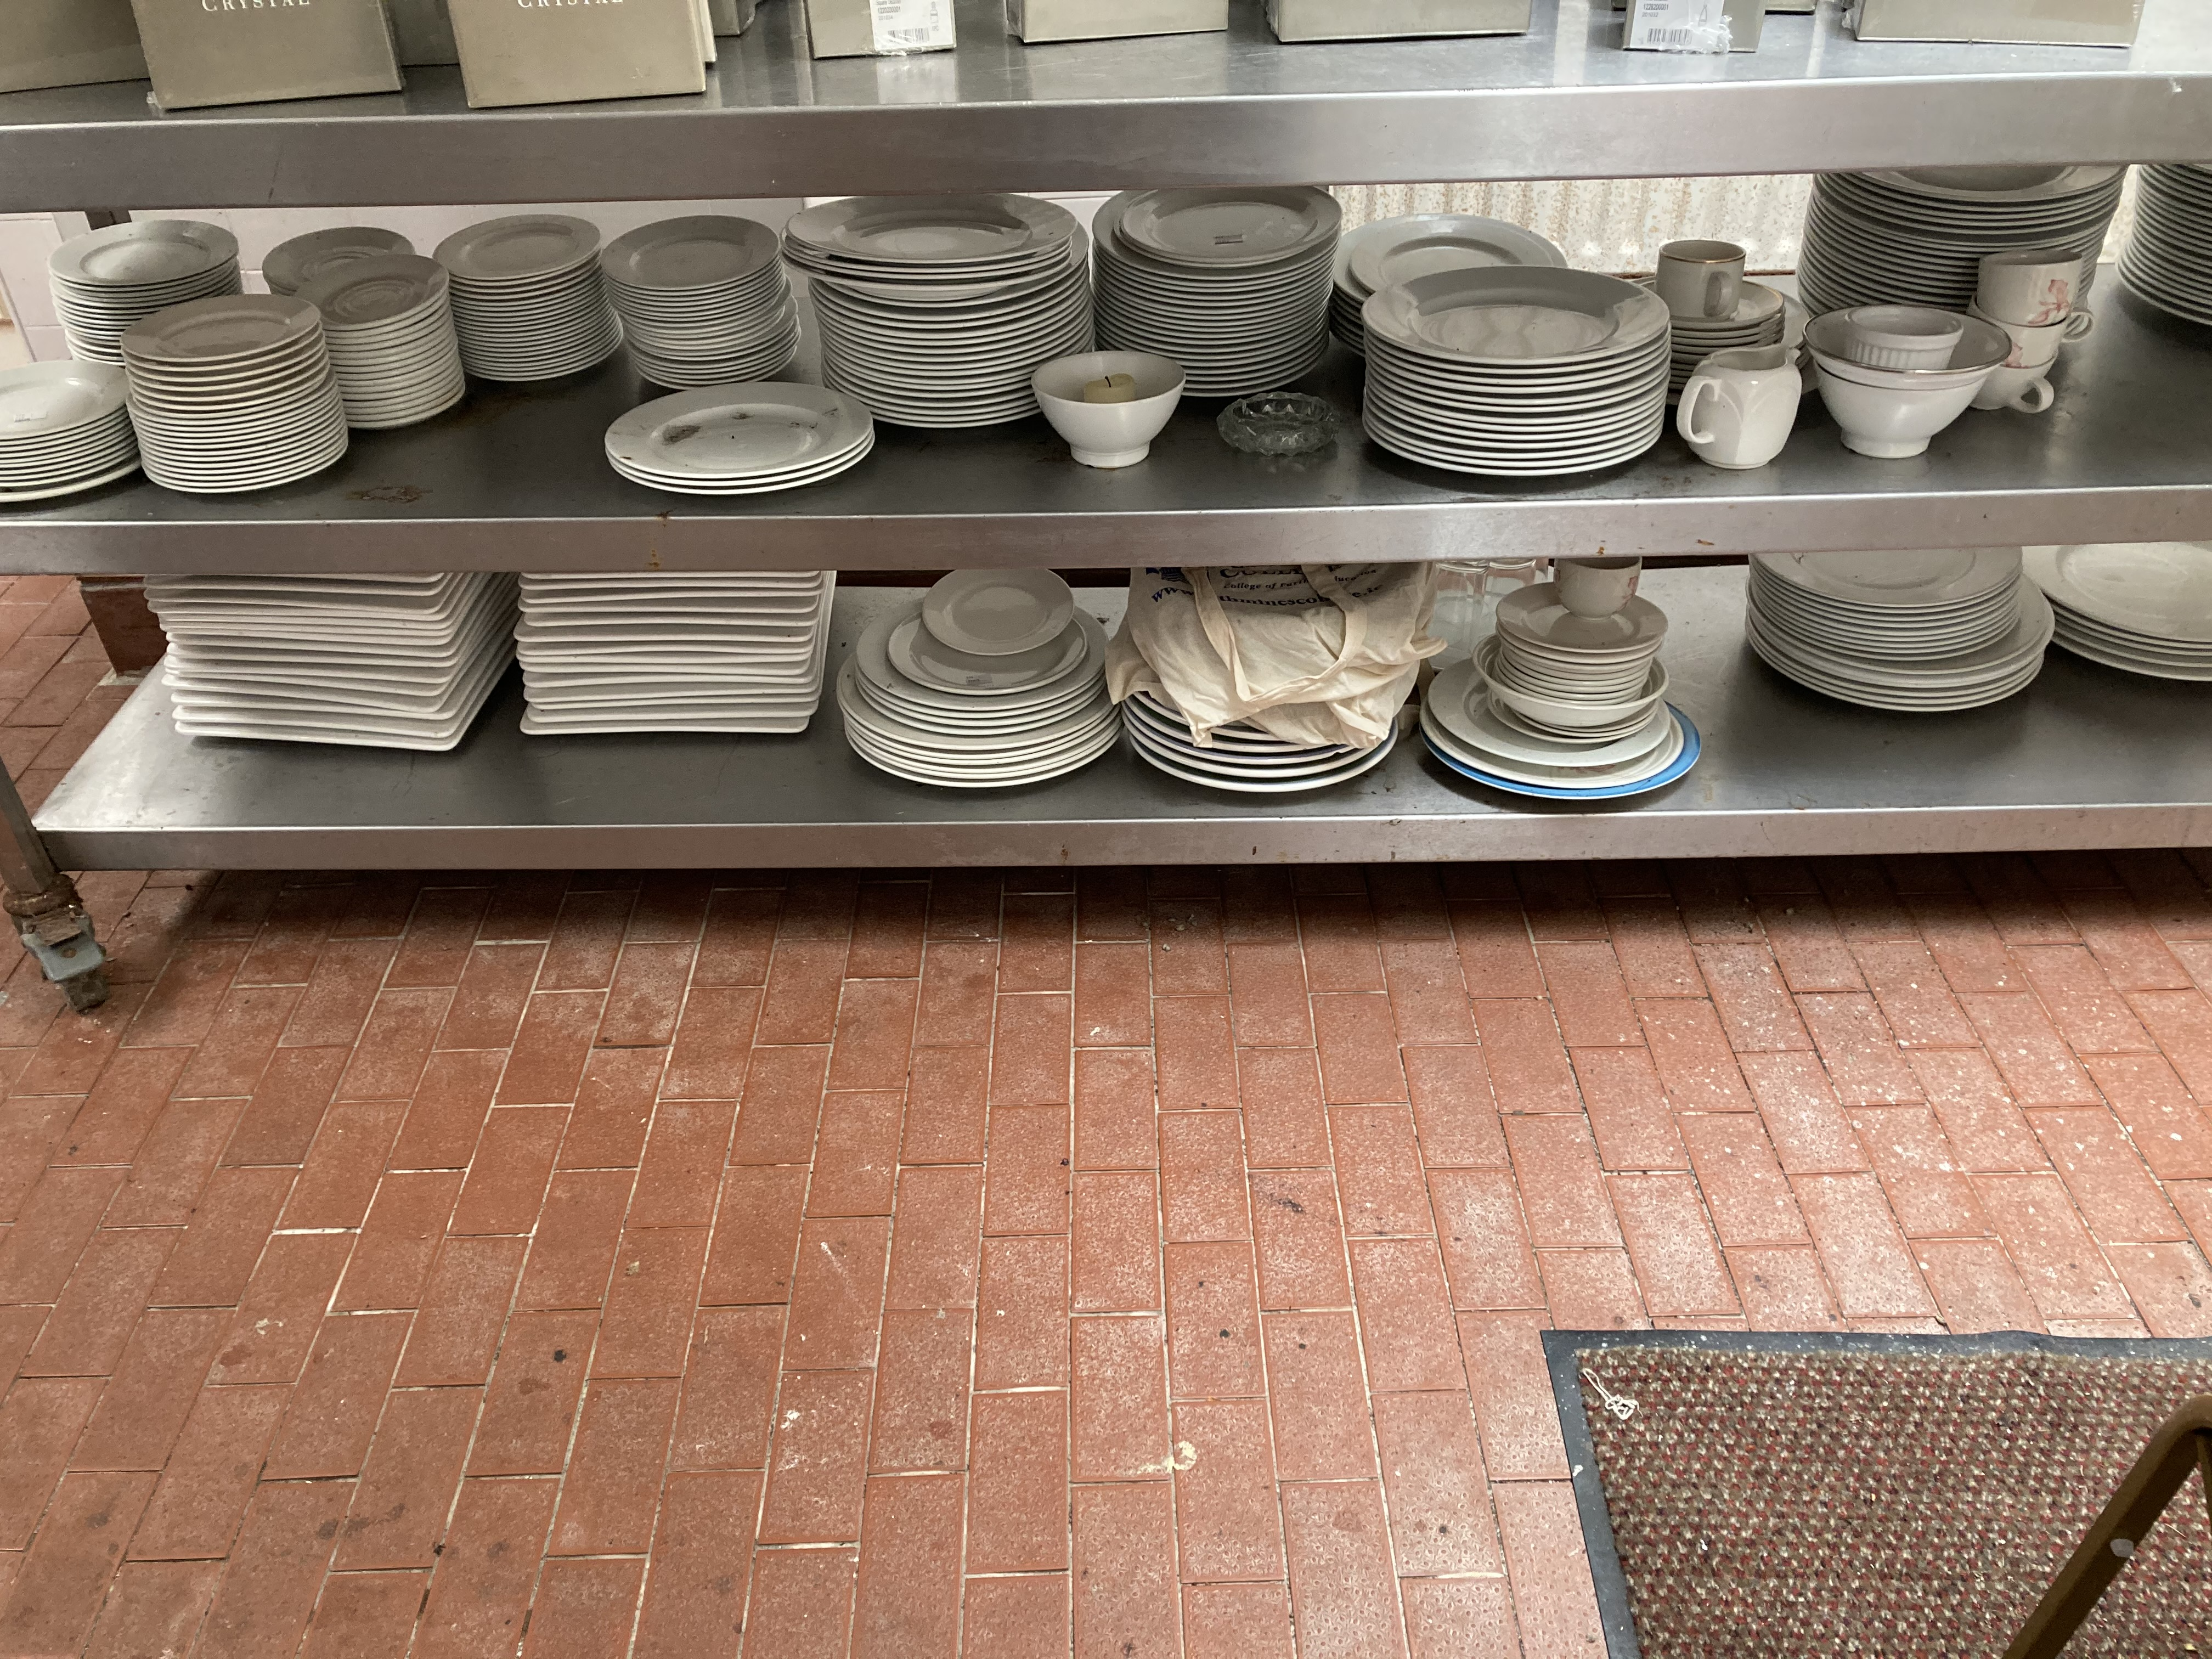 A very large quantity of white Restaurant Crockery, dinner plates, soup bowls, side plates, cups,